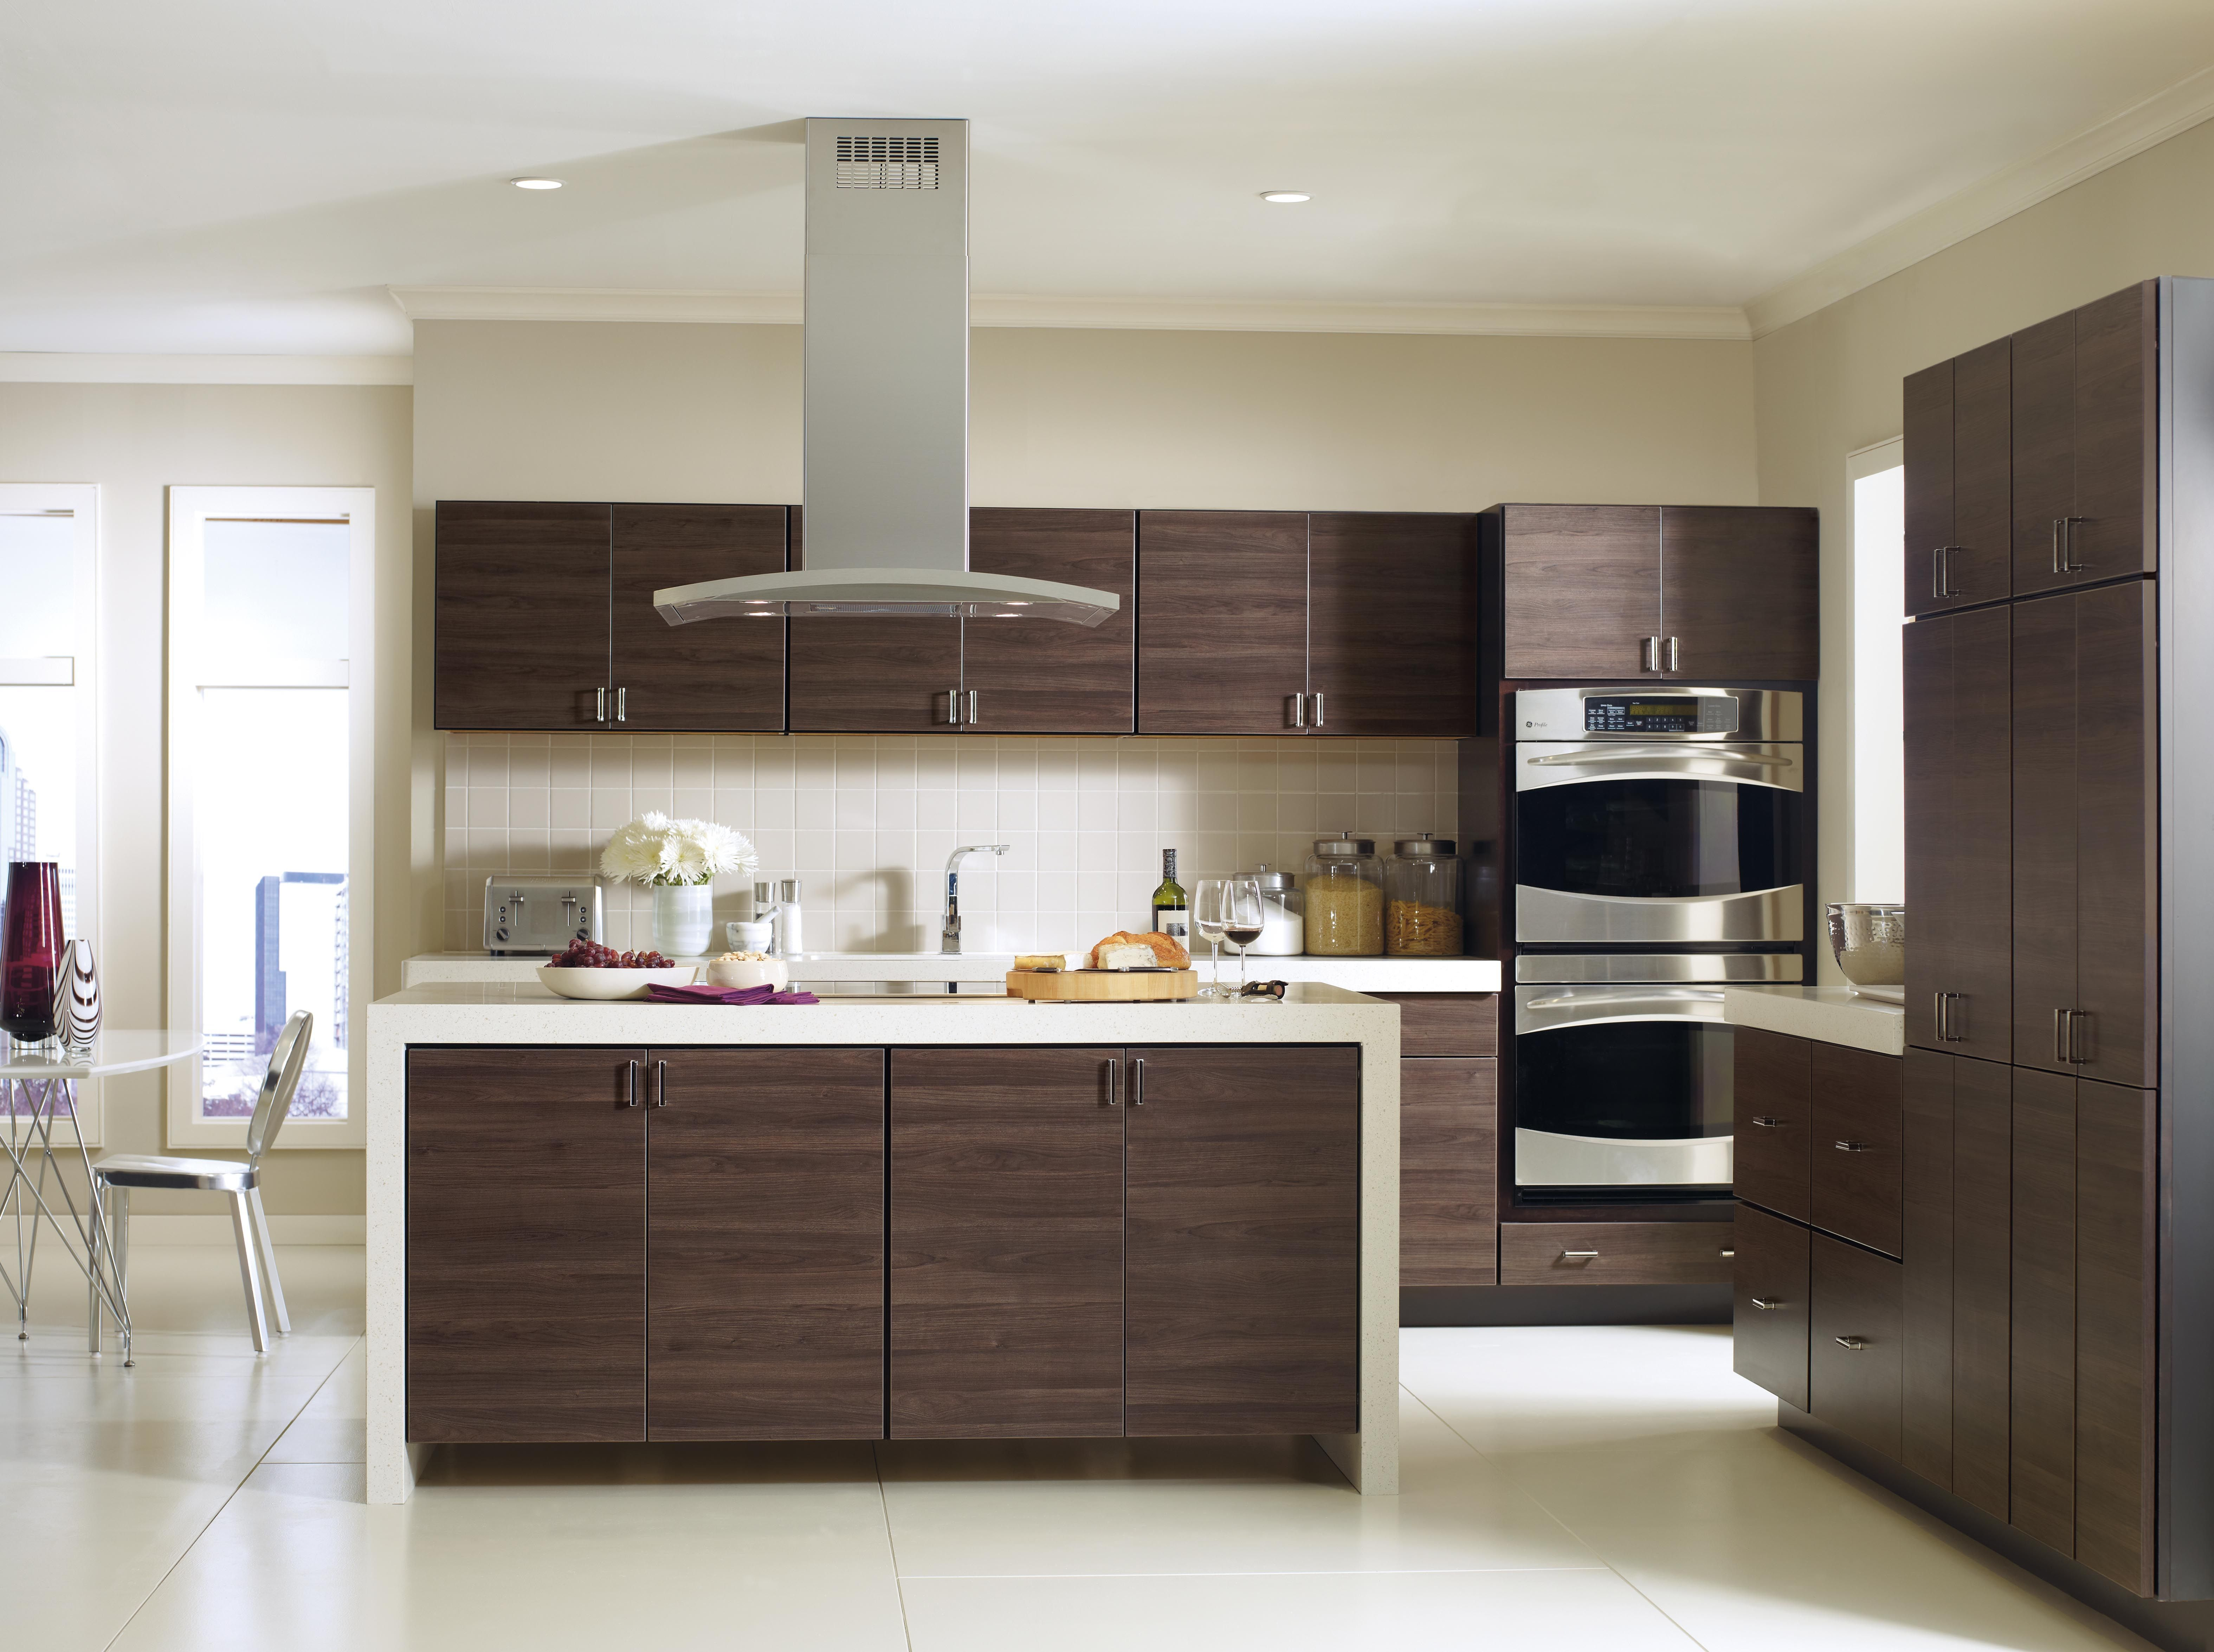 Martha Stewart Living Kitchen Designs From The Home Depot Kitchen Design Martha Stewart Living Kitchen Small U Shaped Kitchens